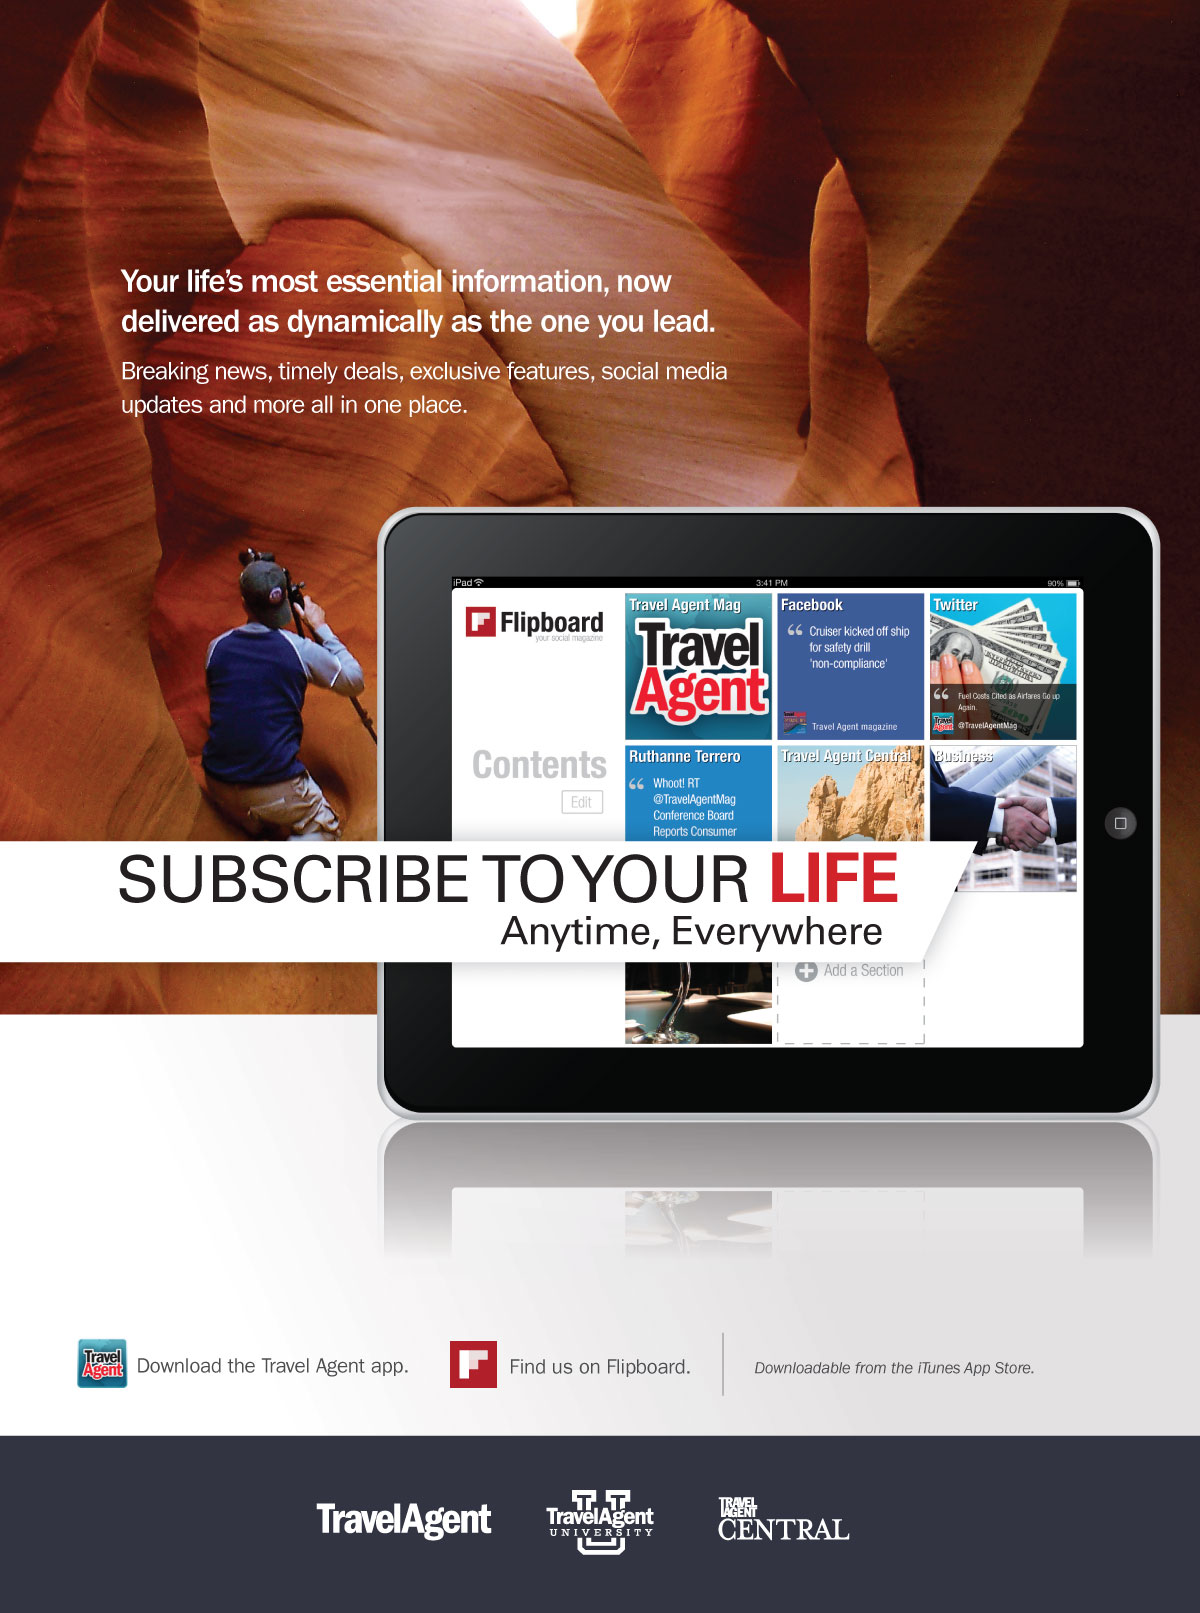 Subscribe to Your Life- Cave